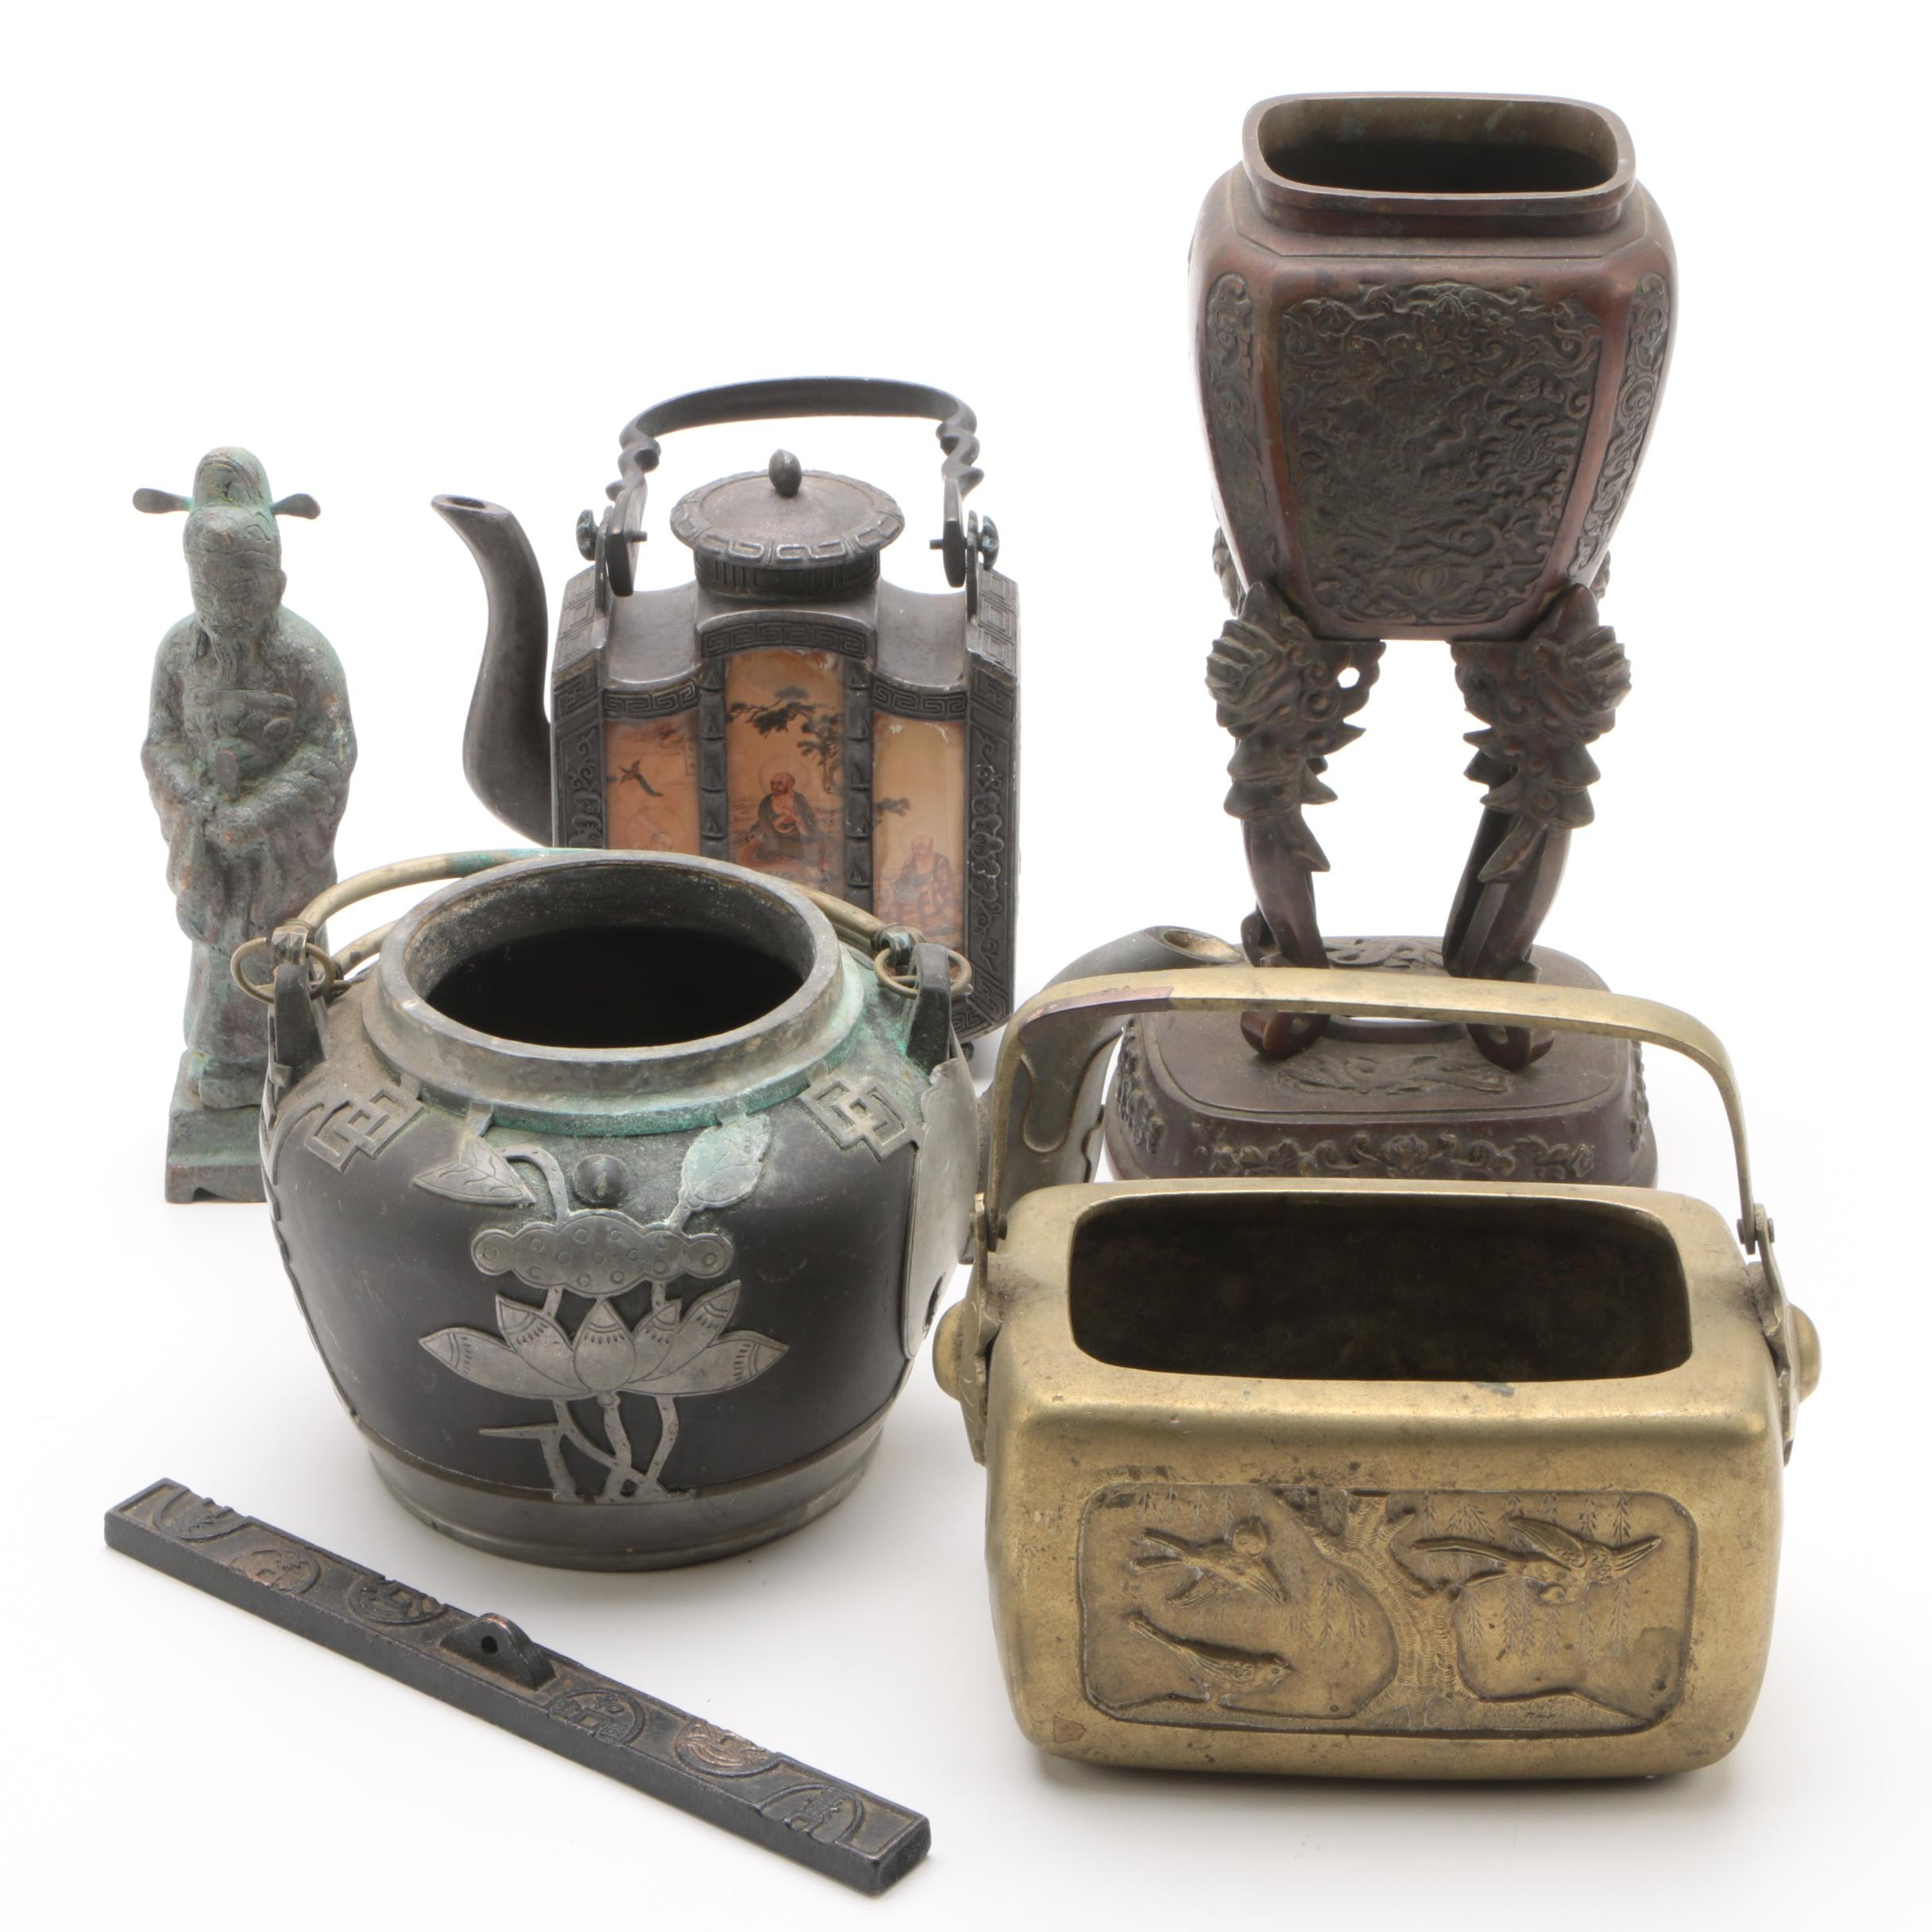 Shantou Style Pewter Teapot and Other Chinese Decor